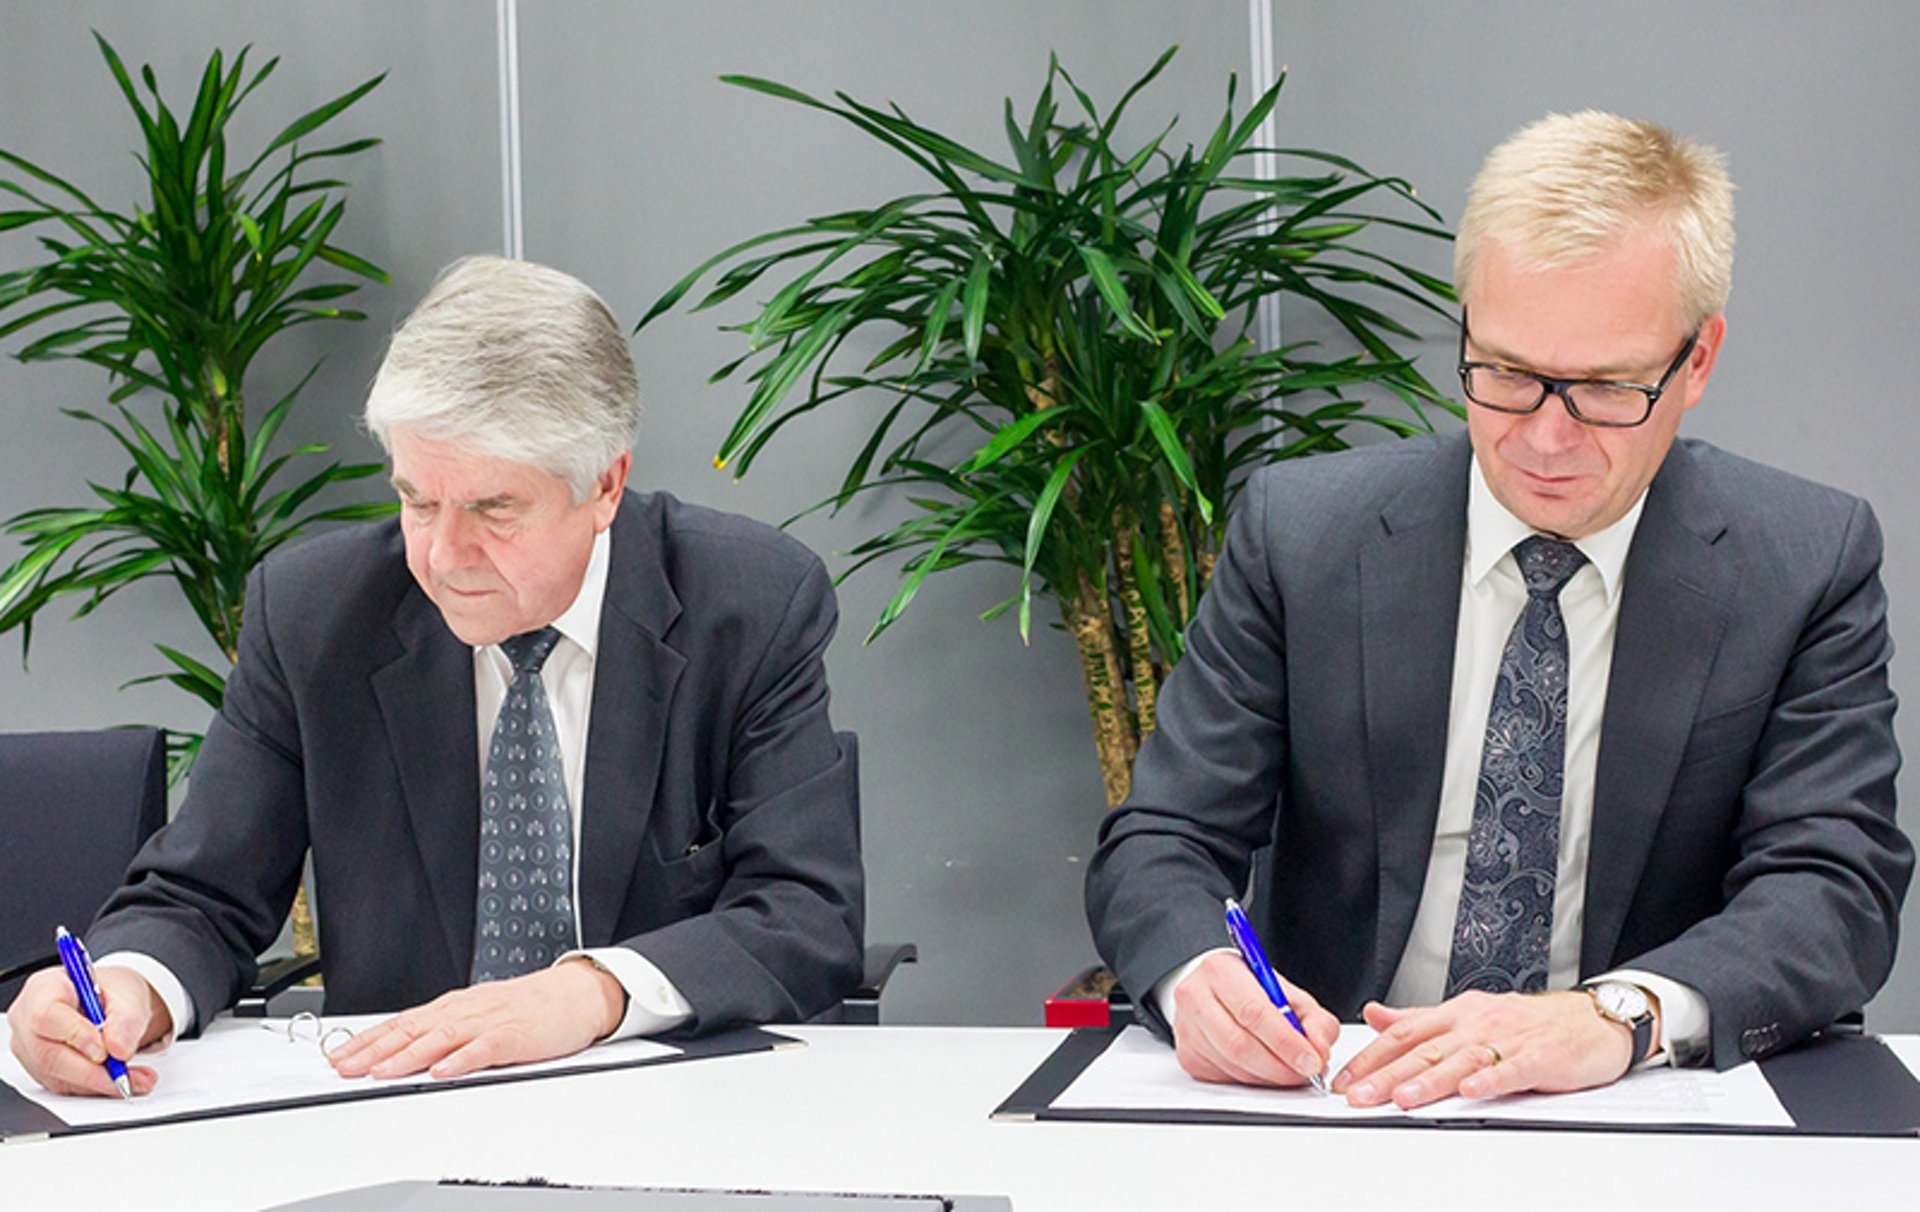 Contract signature between Airbus and Suomen Virveverkko Oy  for the modernisation of the Finnish nationwide Tetra network VIRVE